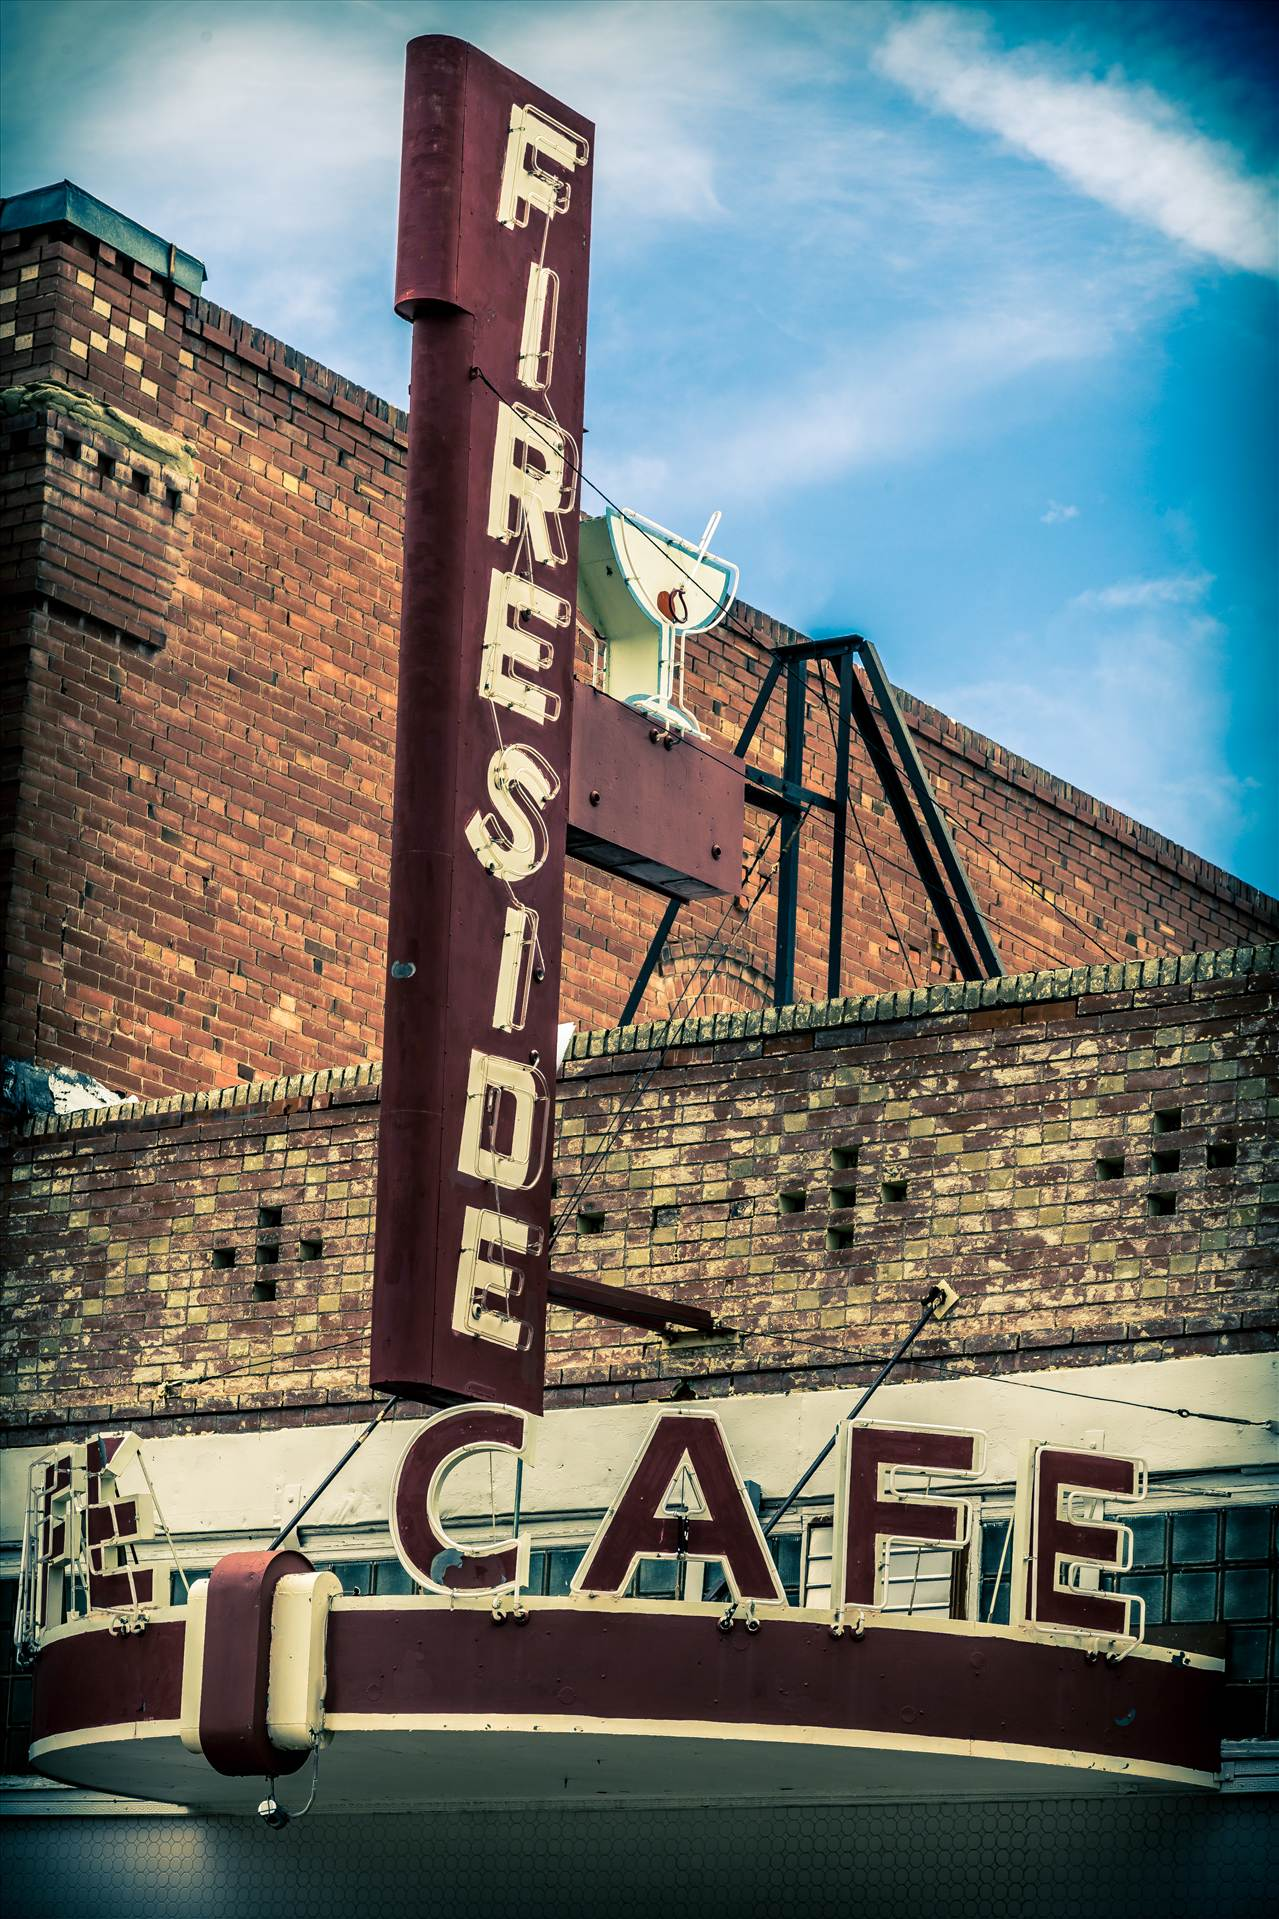 Fireside Cafe - An old diner in Fireside, Colorado. by D Scott Smith